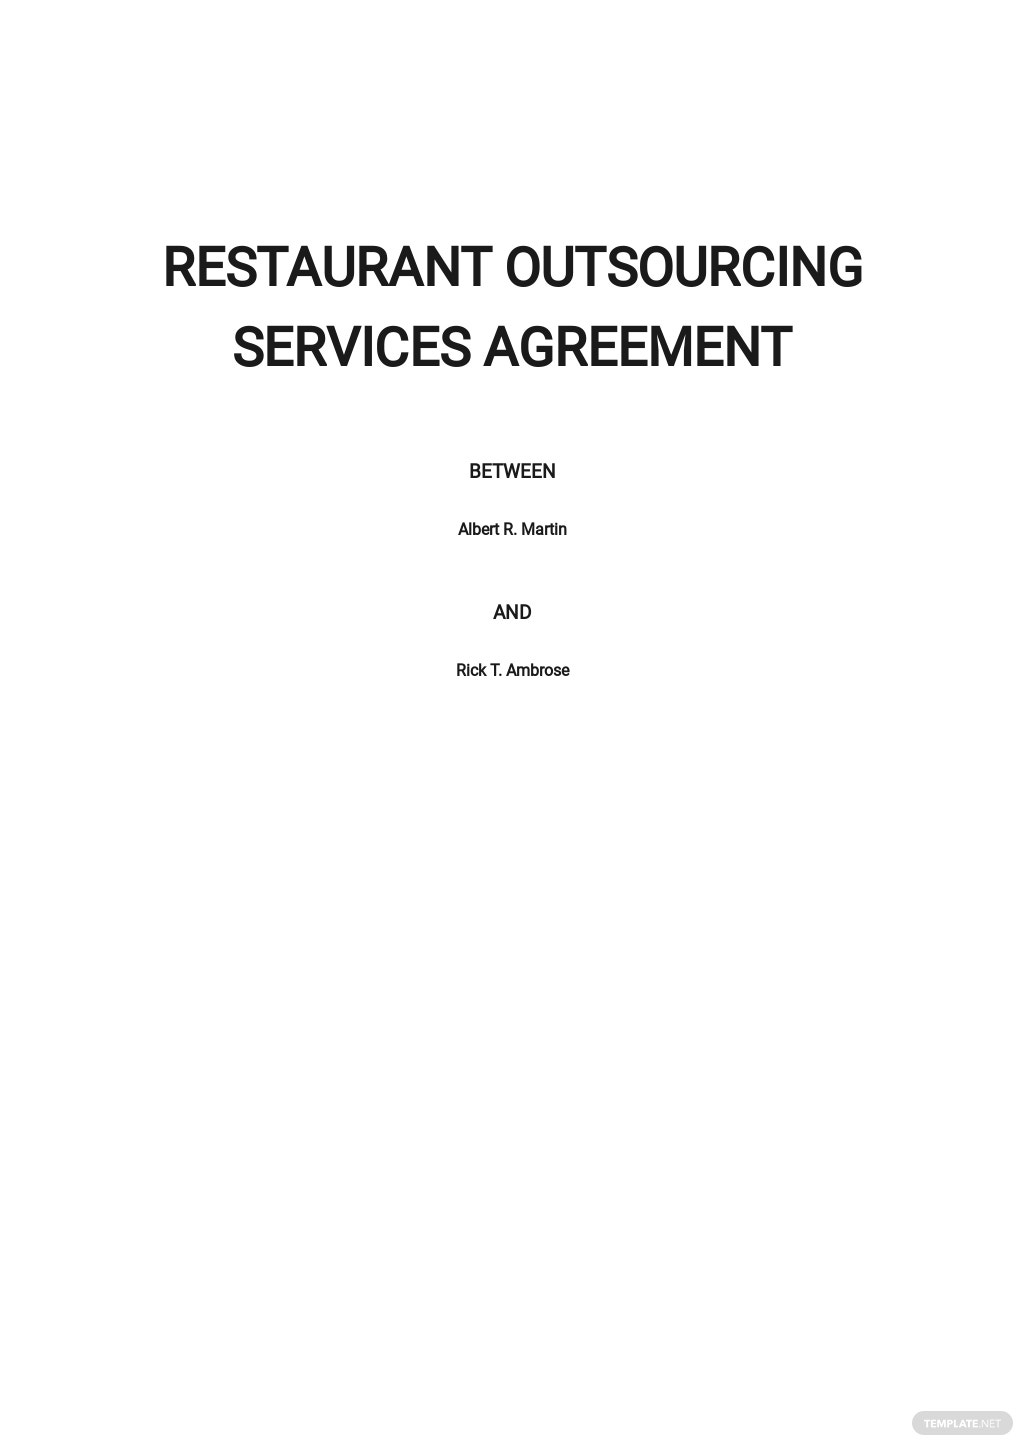 Restaurant Outsourcing Services Agreement Template.jpe